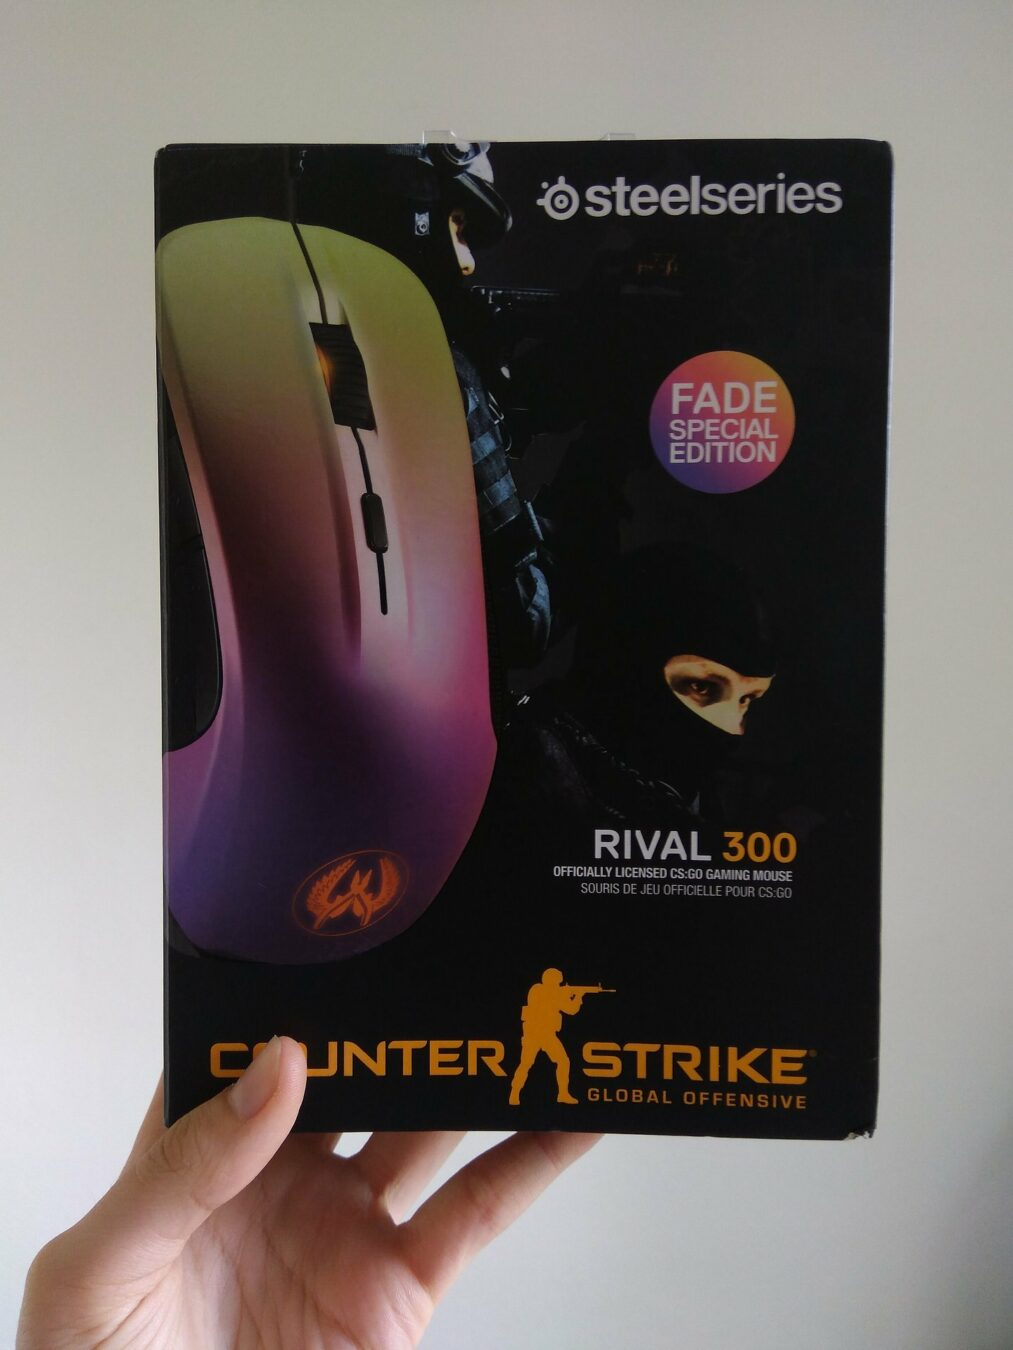 Photo de SteelSeries – Une souris gaming à l'allure « féminine » : La Rival 300 (CS:GO, Fade edition)